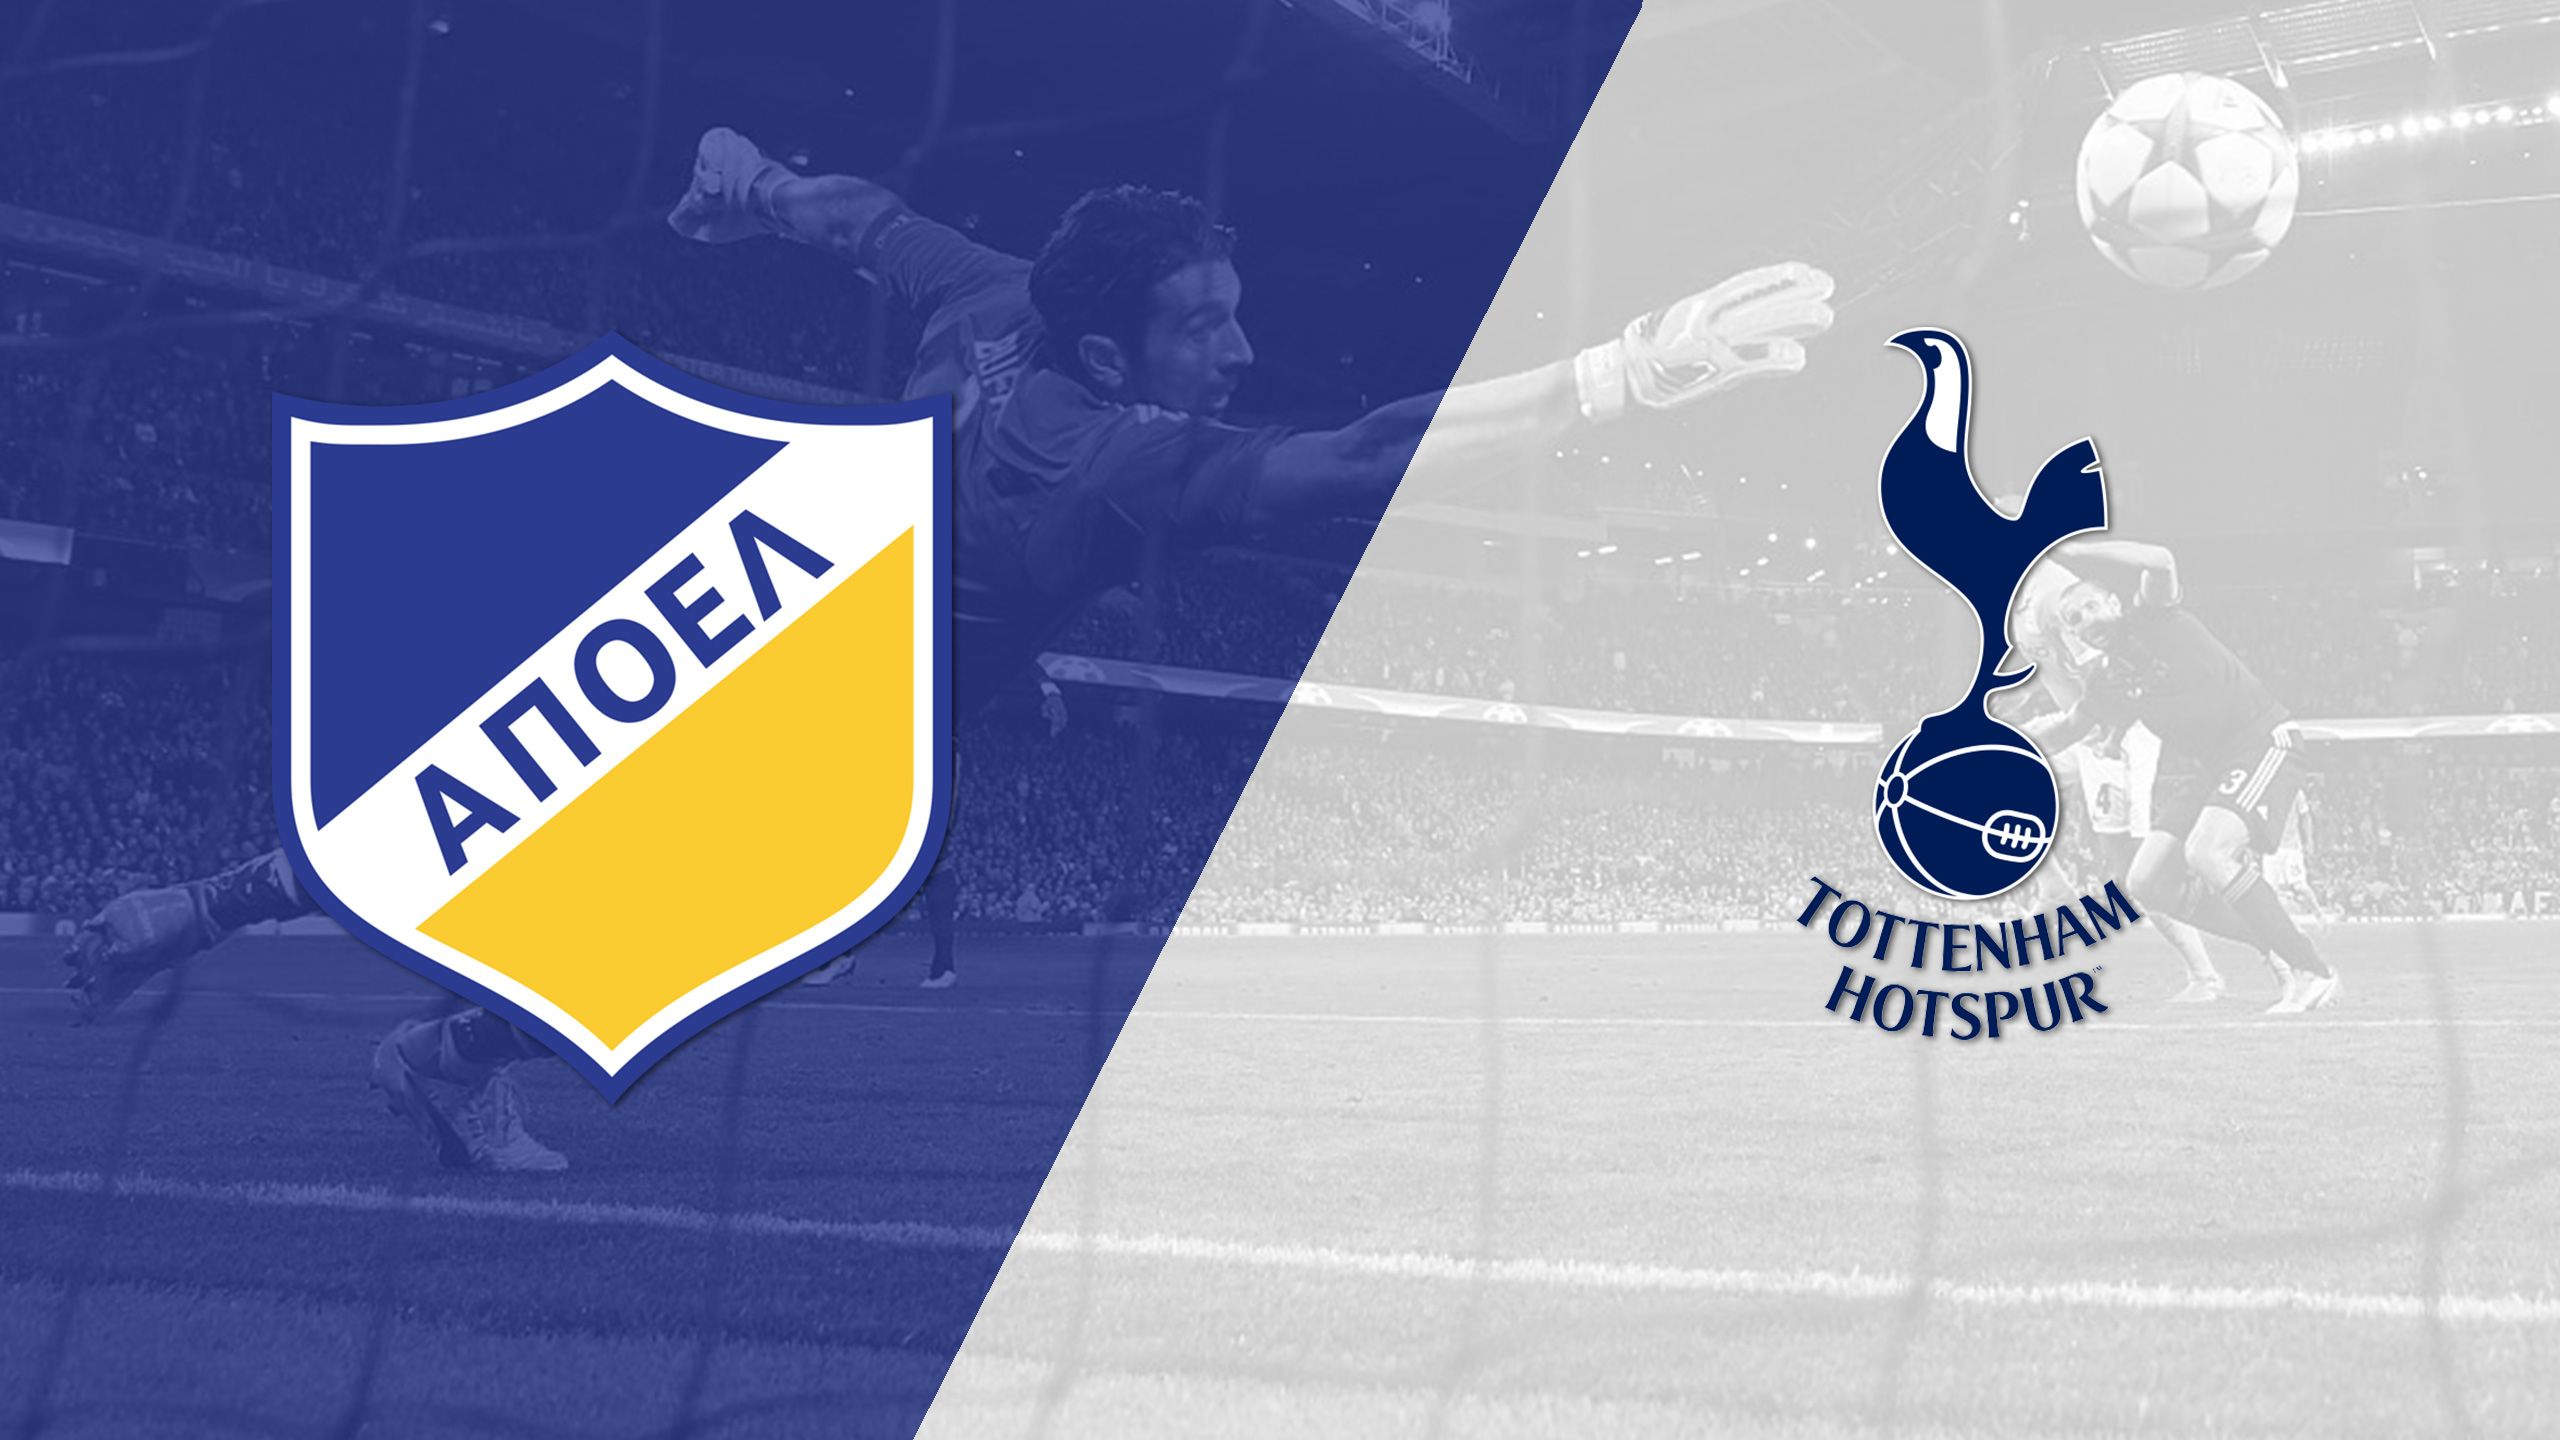 In Spanish - Apoel Nicosia vs. Tottenham Hotspur (Group Stage) (UEFA Champions League)